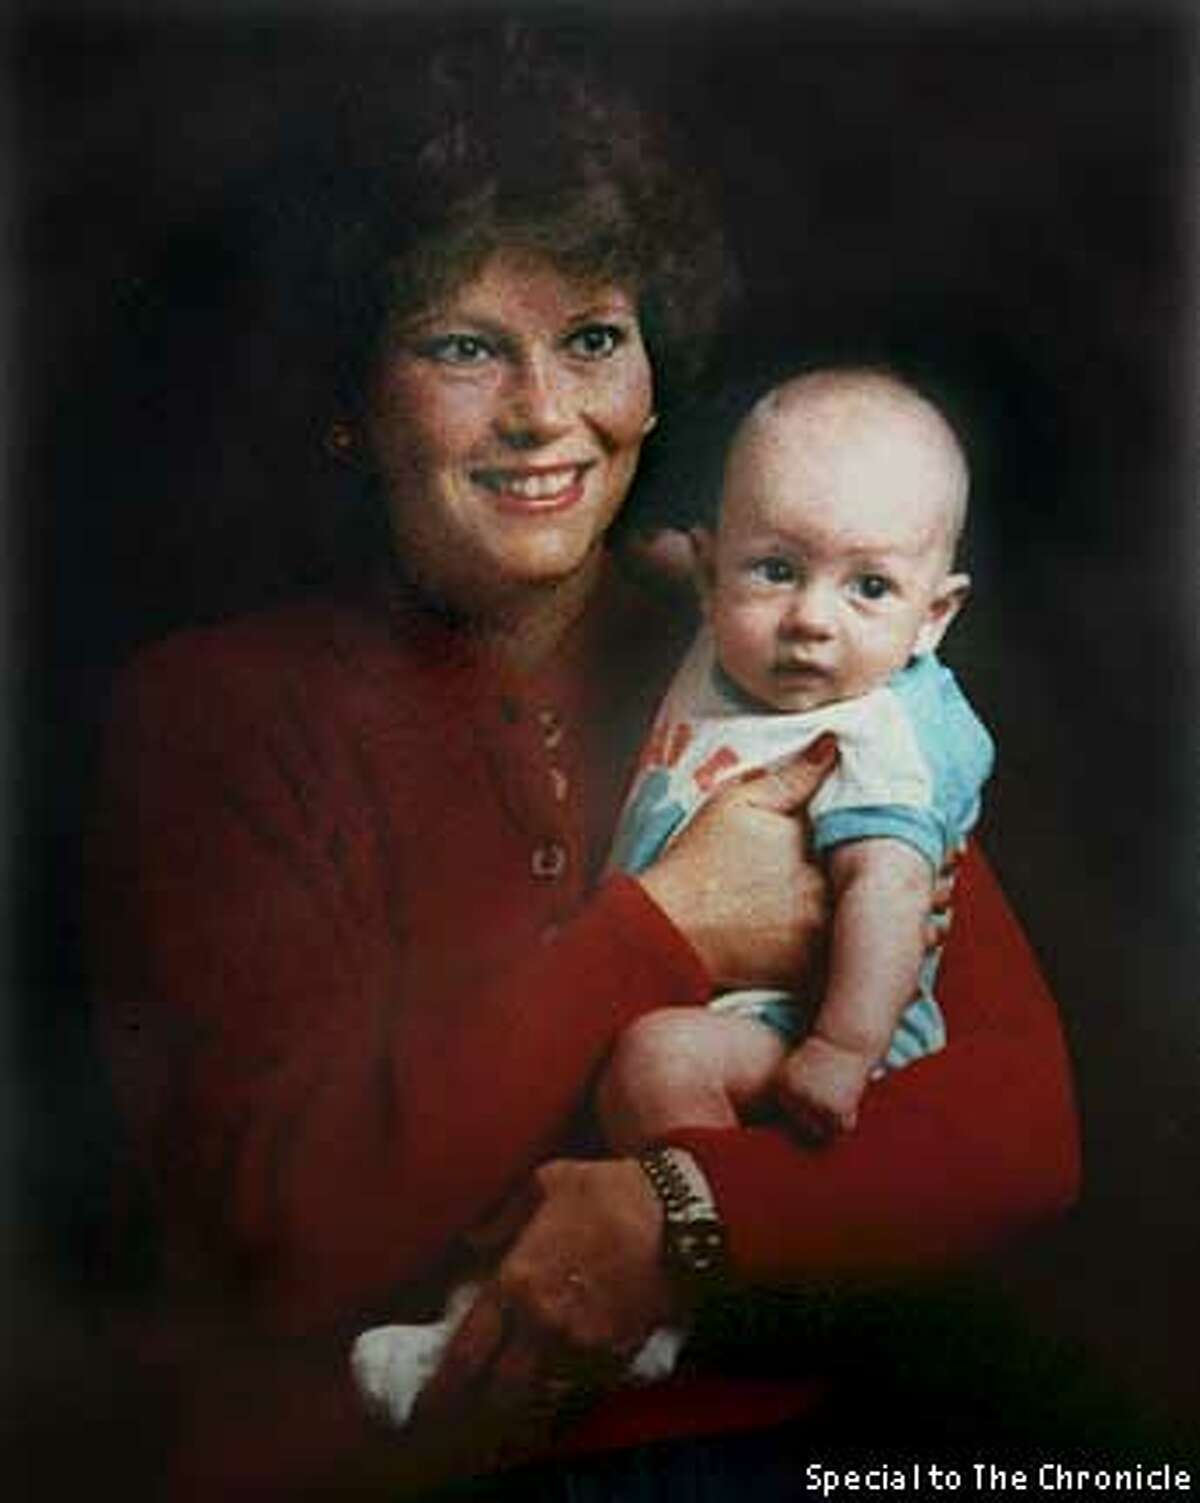 SURVIVORS4-C-23SEP99-MN-LH--Copied photo of Carol Dickinson and her son Scotty.